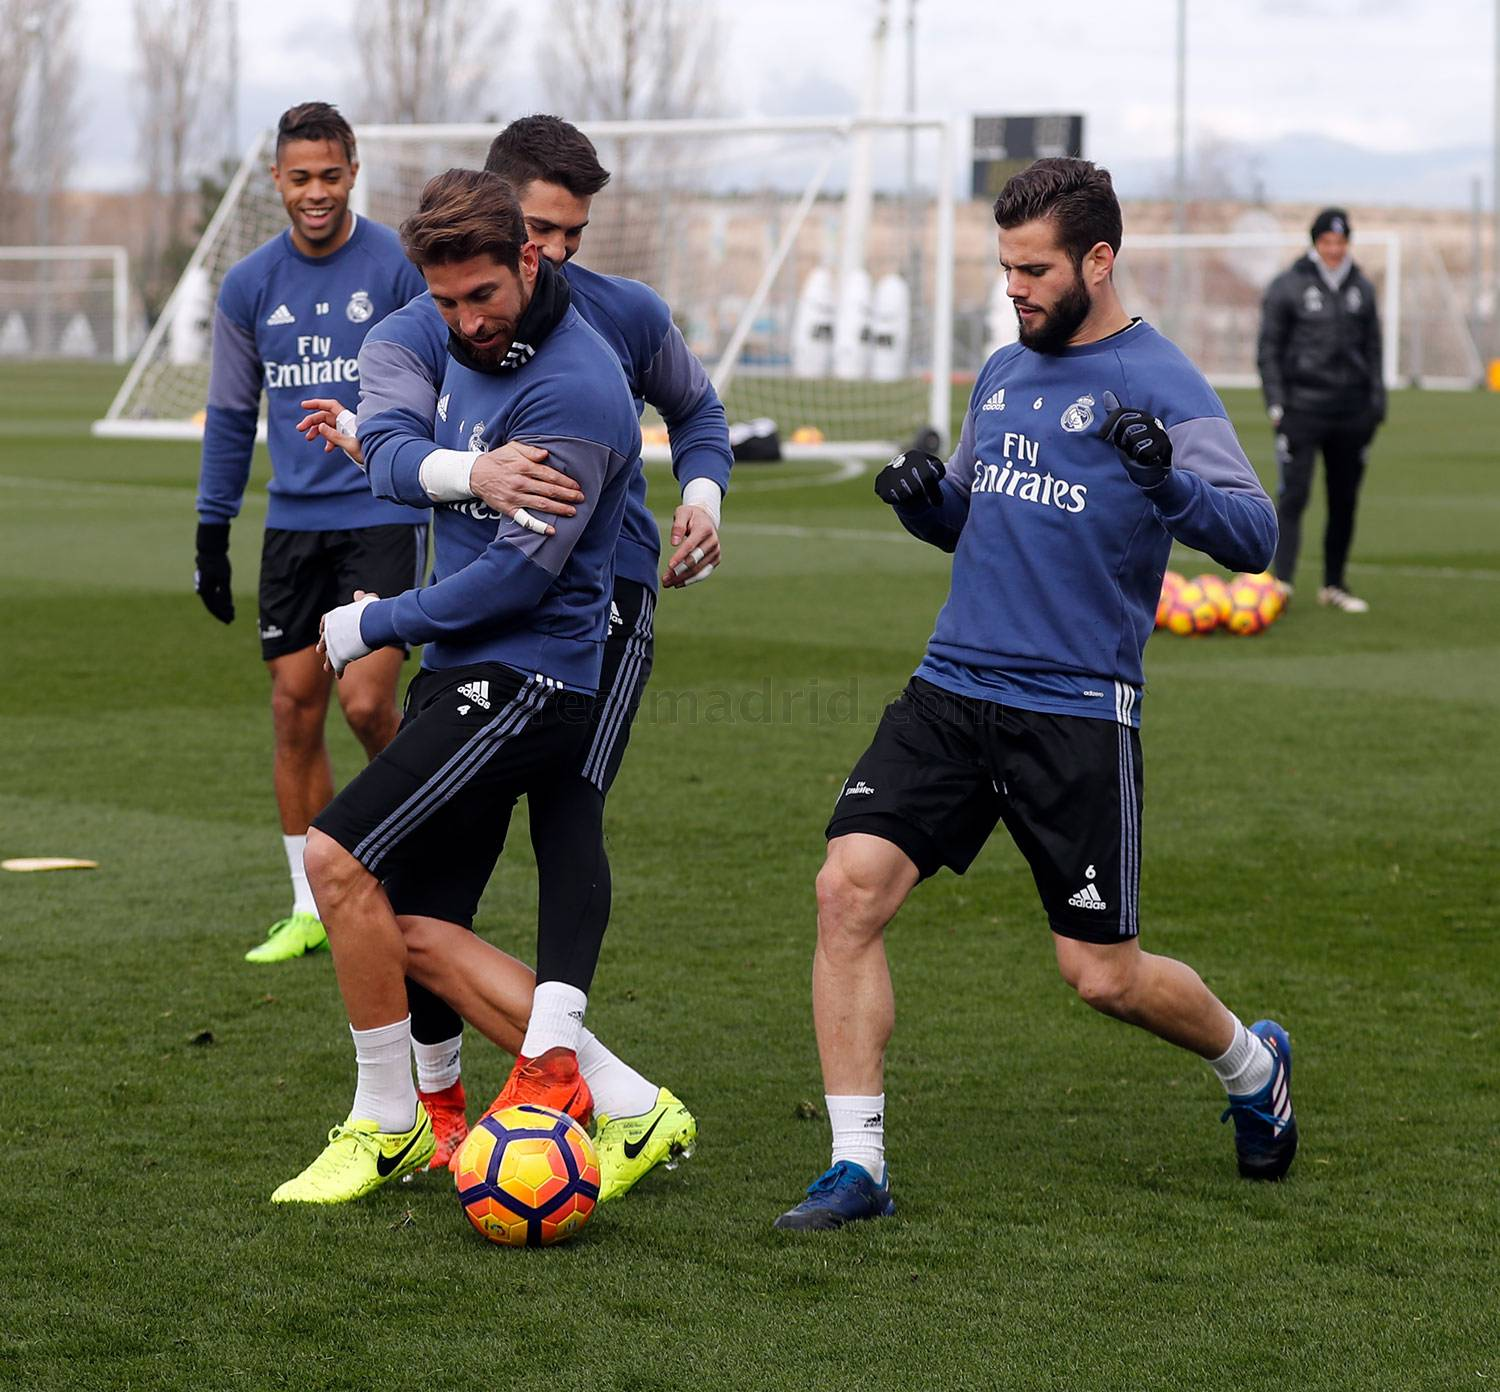 Real Madrid - Entrenamiento del Real Madrid - 28-02-2017